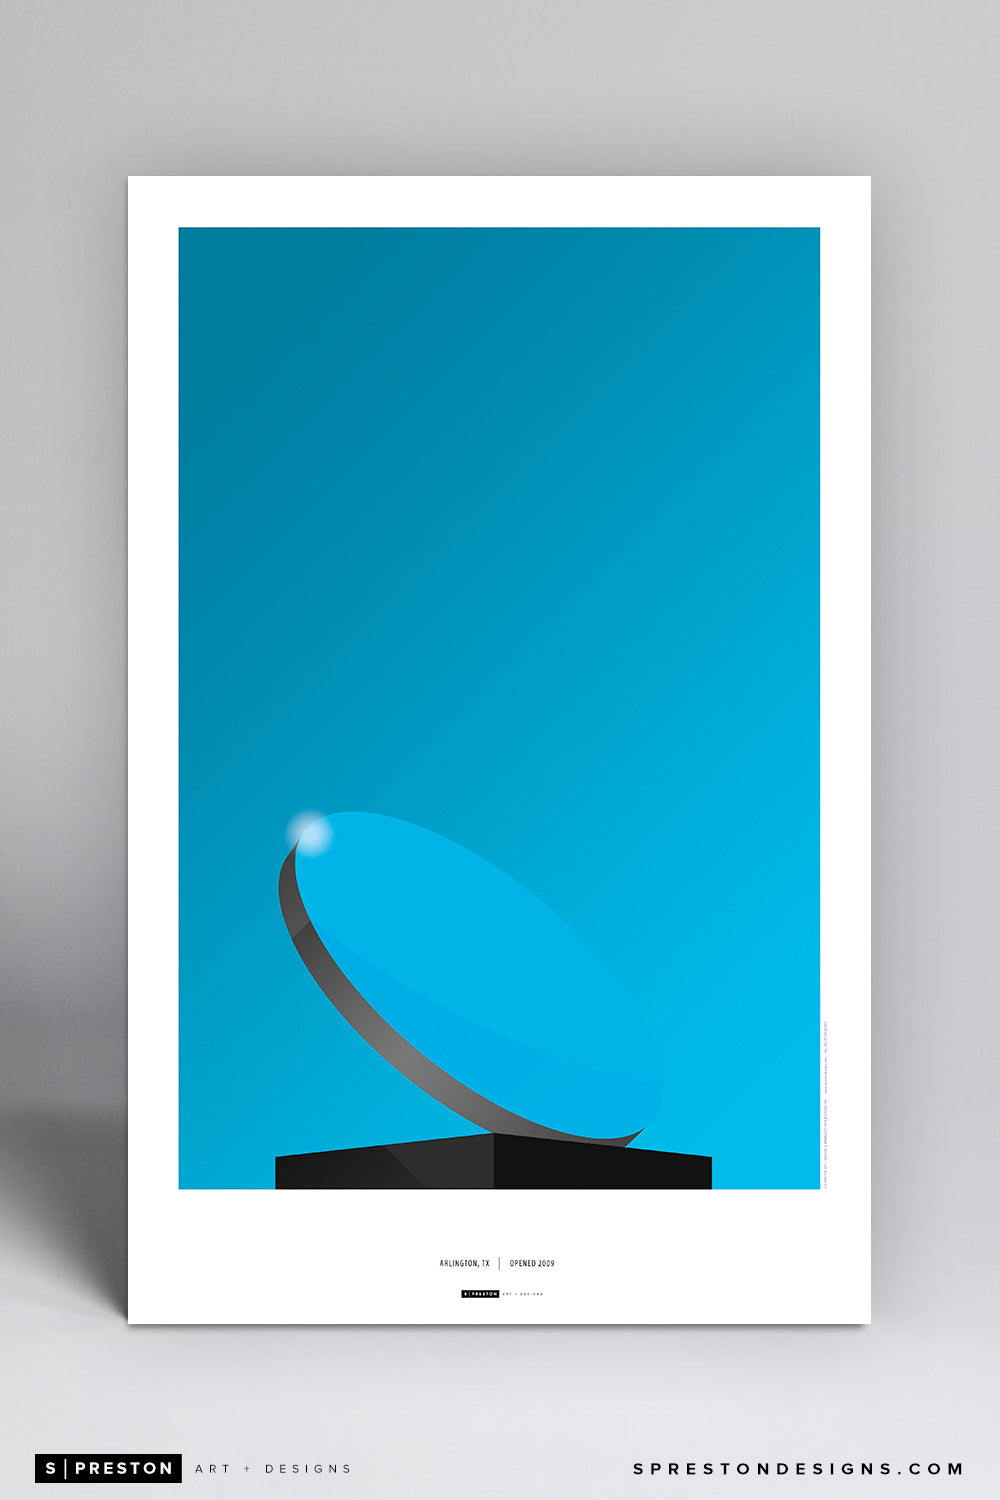 Minimalist AT&T Stadium (Sky Mirror) Art Poster Art Poster - Dallas Cowboys - S. Preston Art + Designs